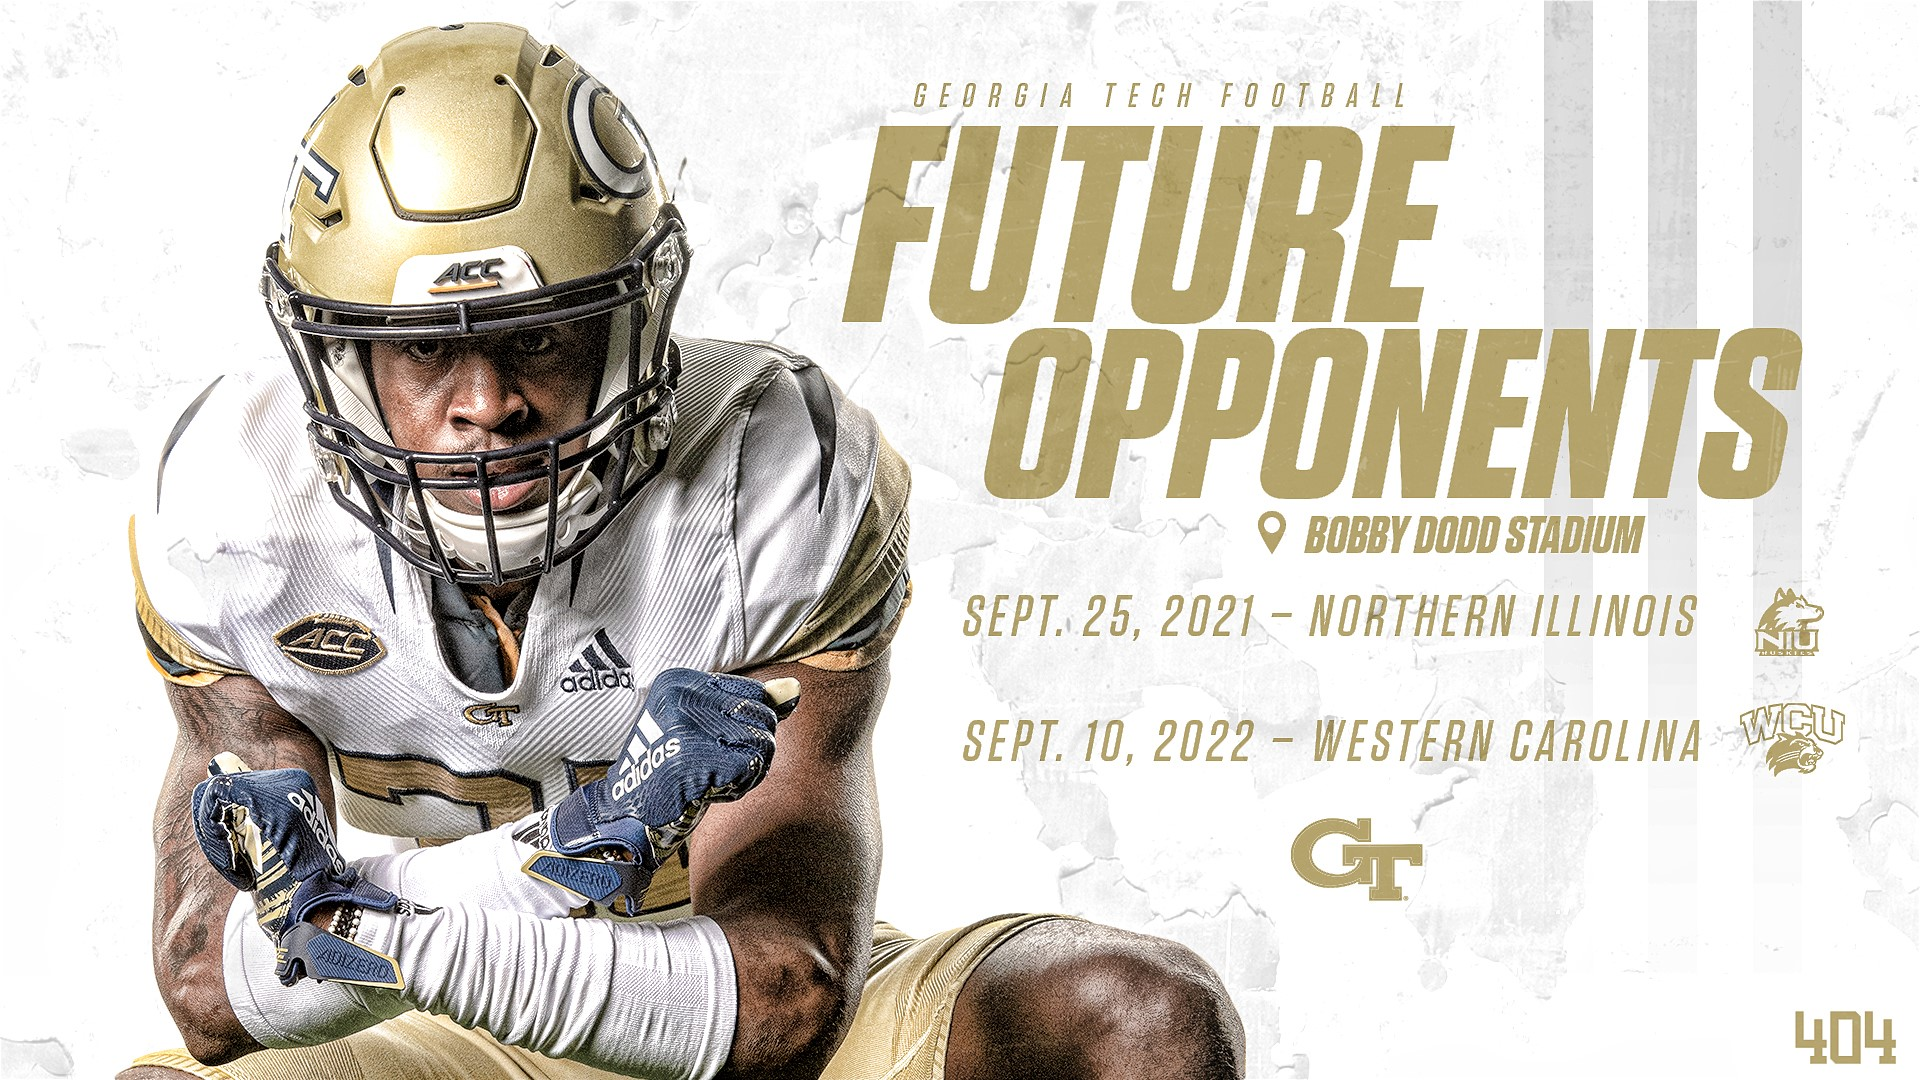 Ucf Football Schedule 2020.Georgia Tech Announces Future Football Opponents Football